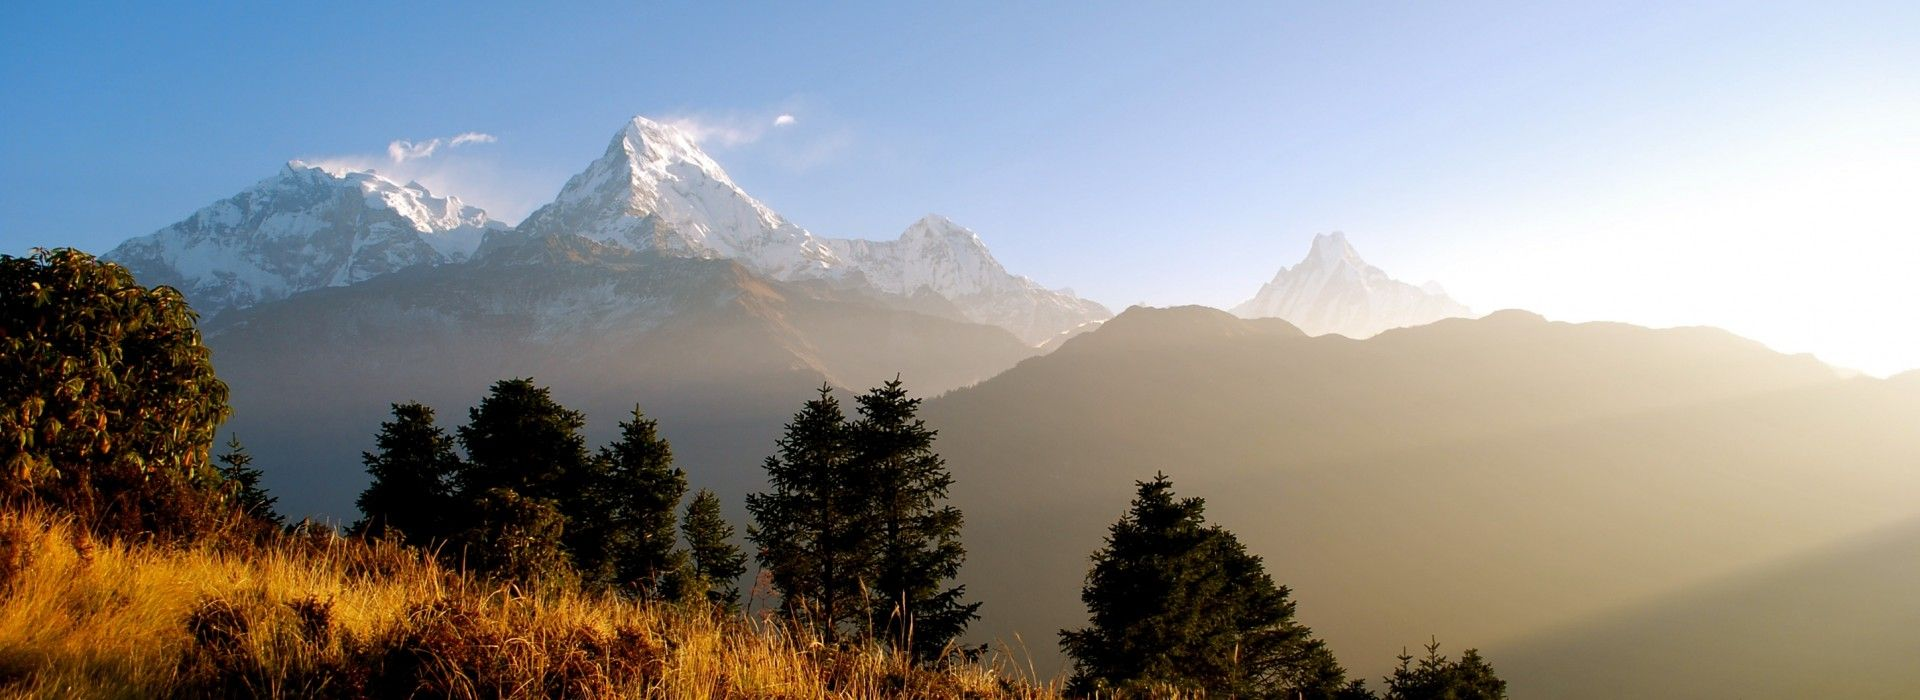 National parks Tours in Nepal